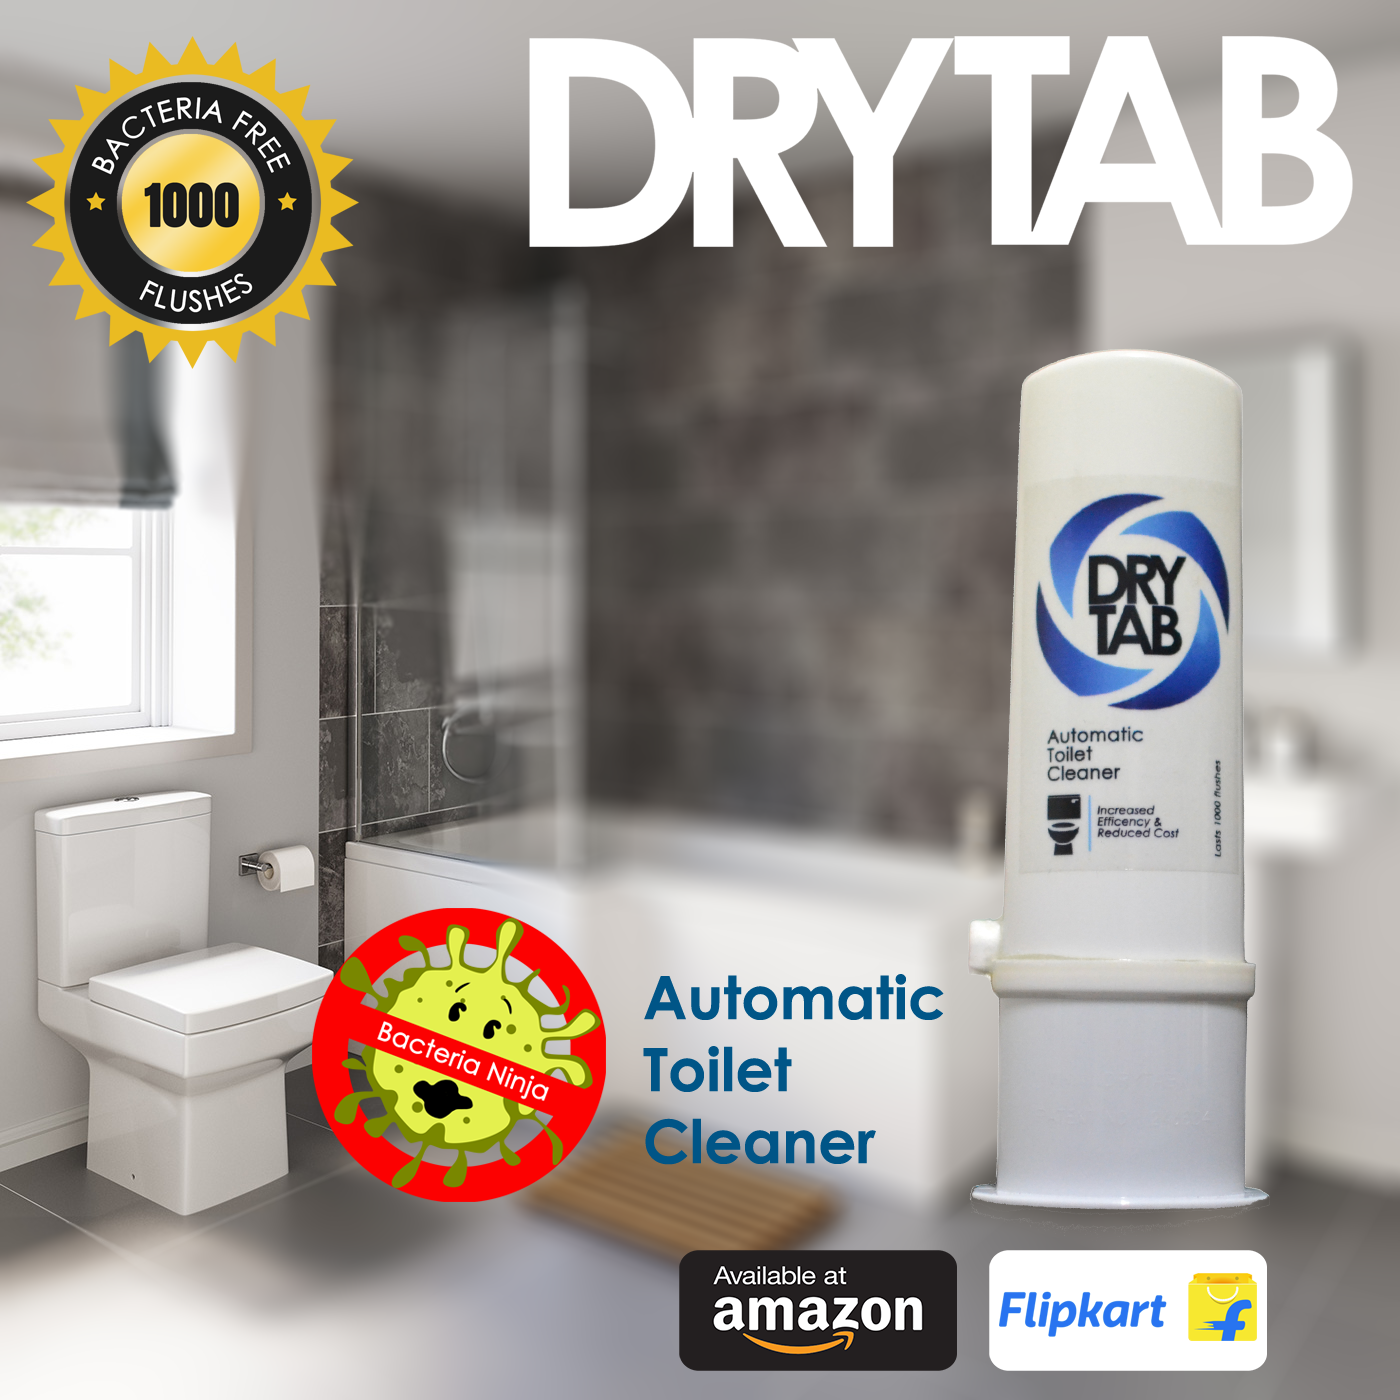 Disinfect Drytab@1x.png